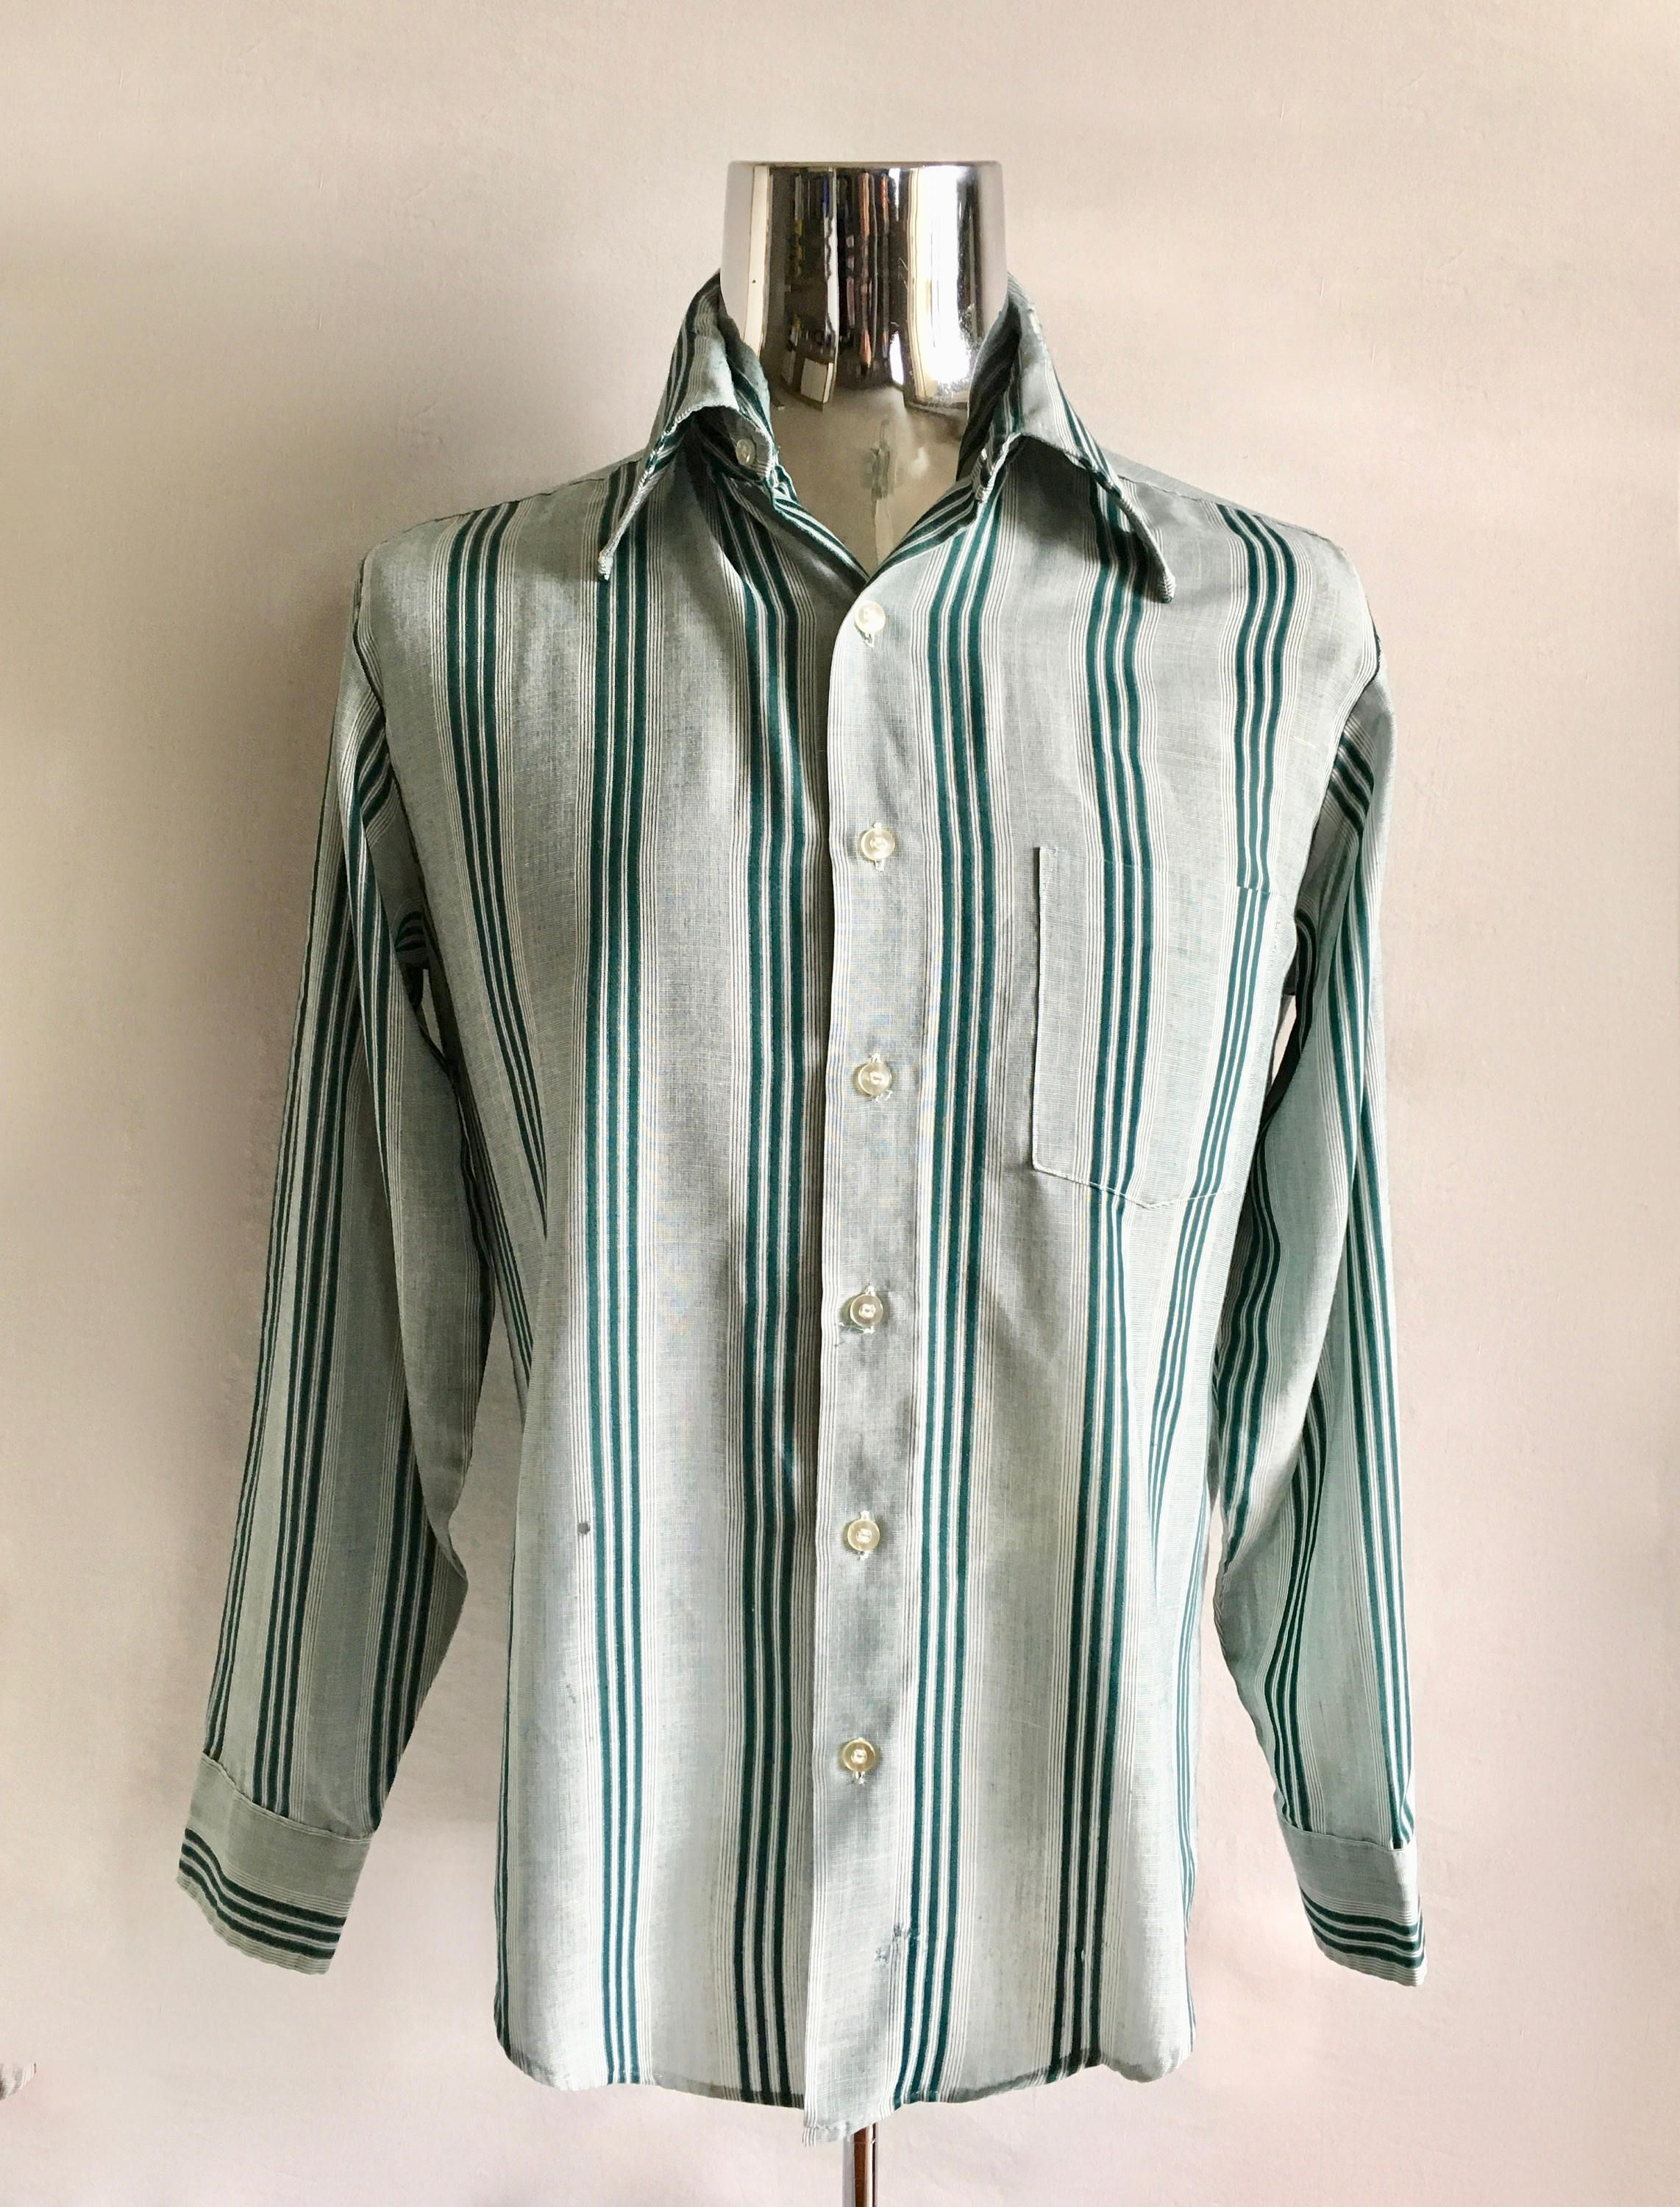 8429141f Vintage Men's 70's Striped Shirt, White, Green, Long Sleeve by Towncraft  (M) by Freshandswanky on Etsy